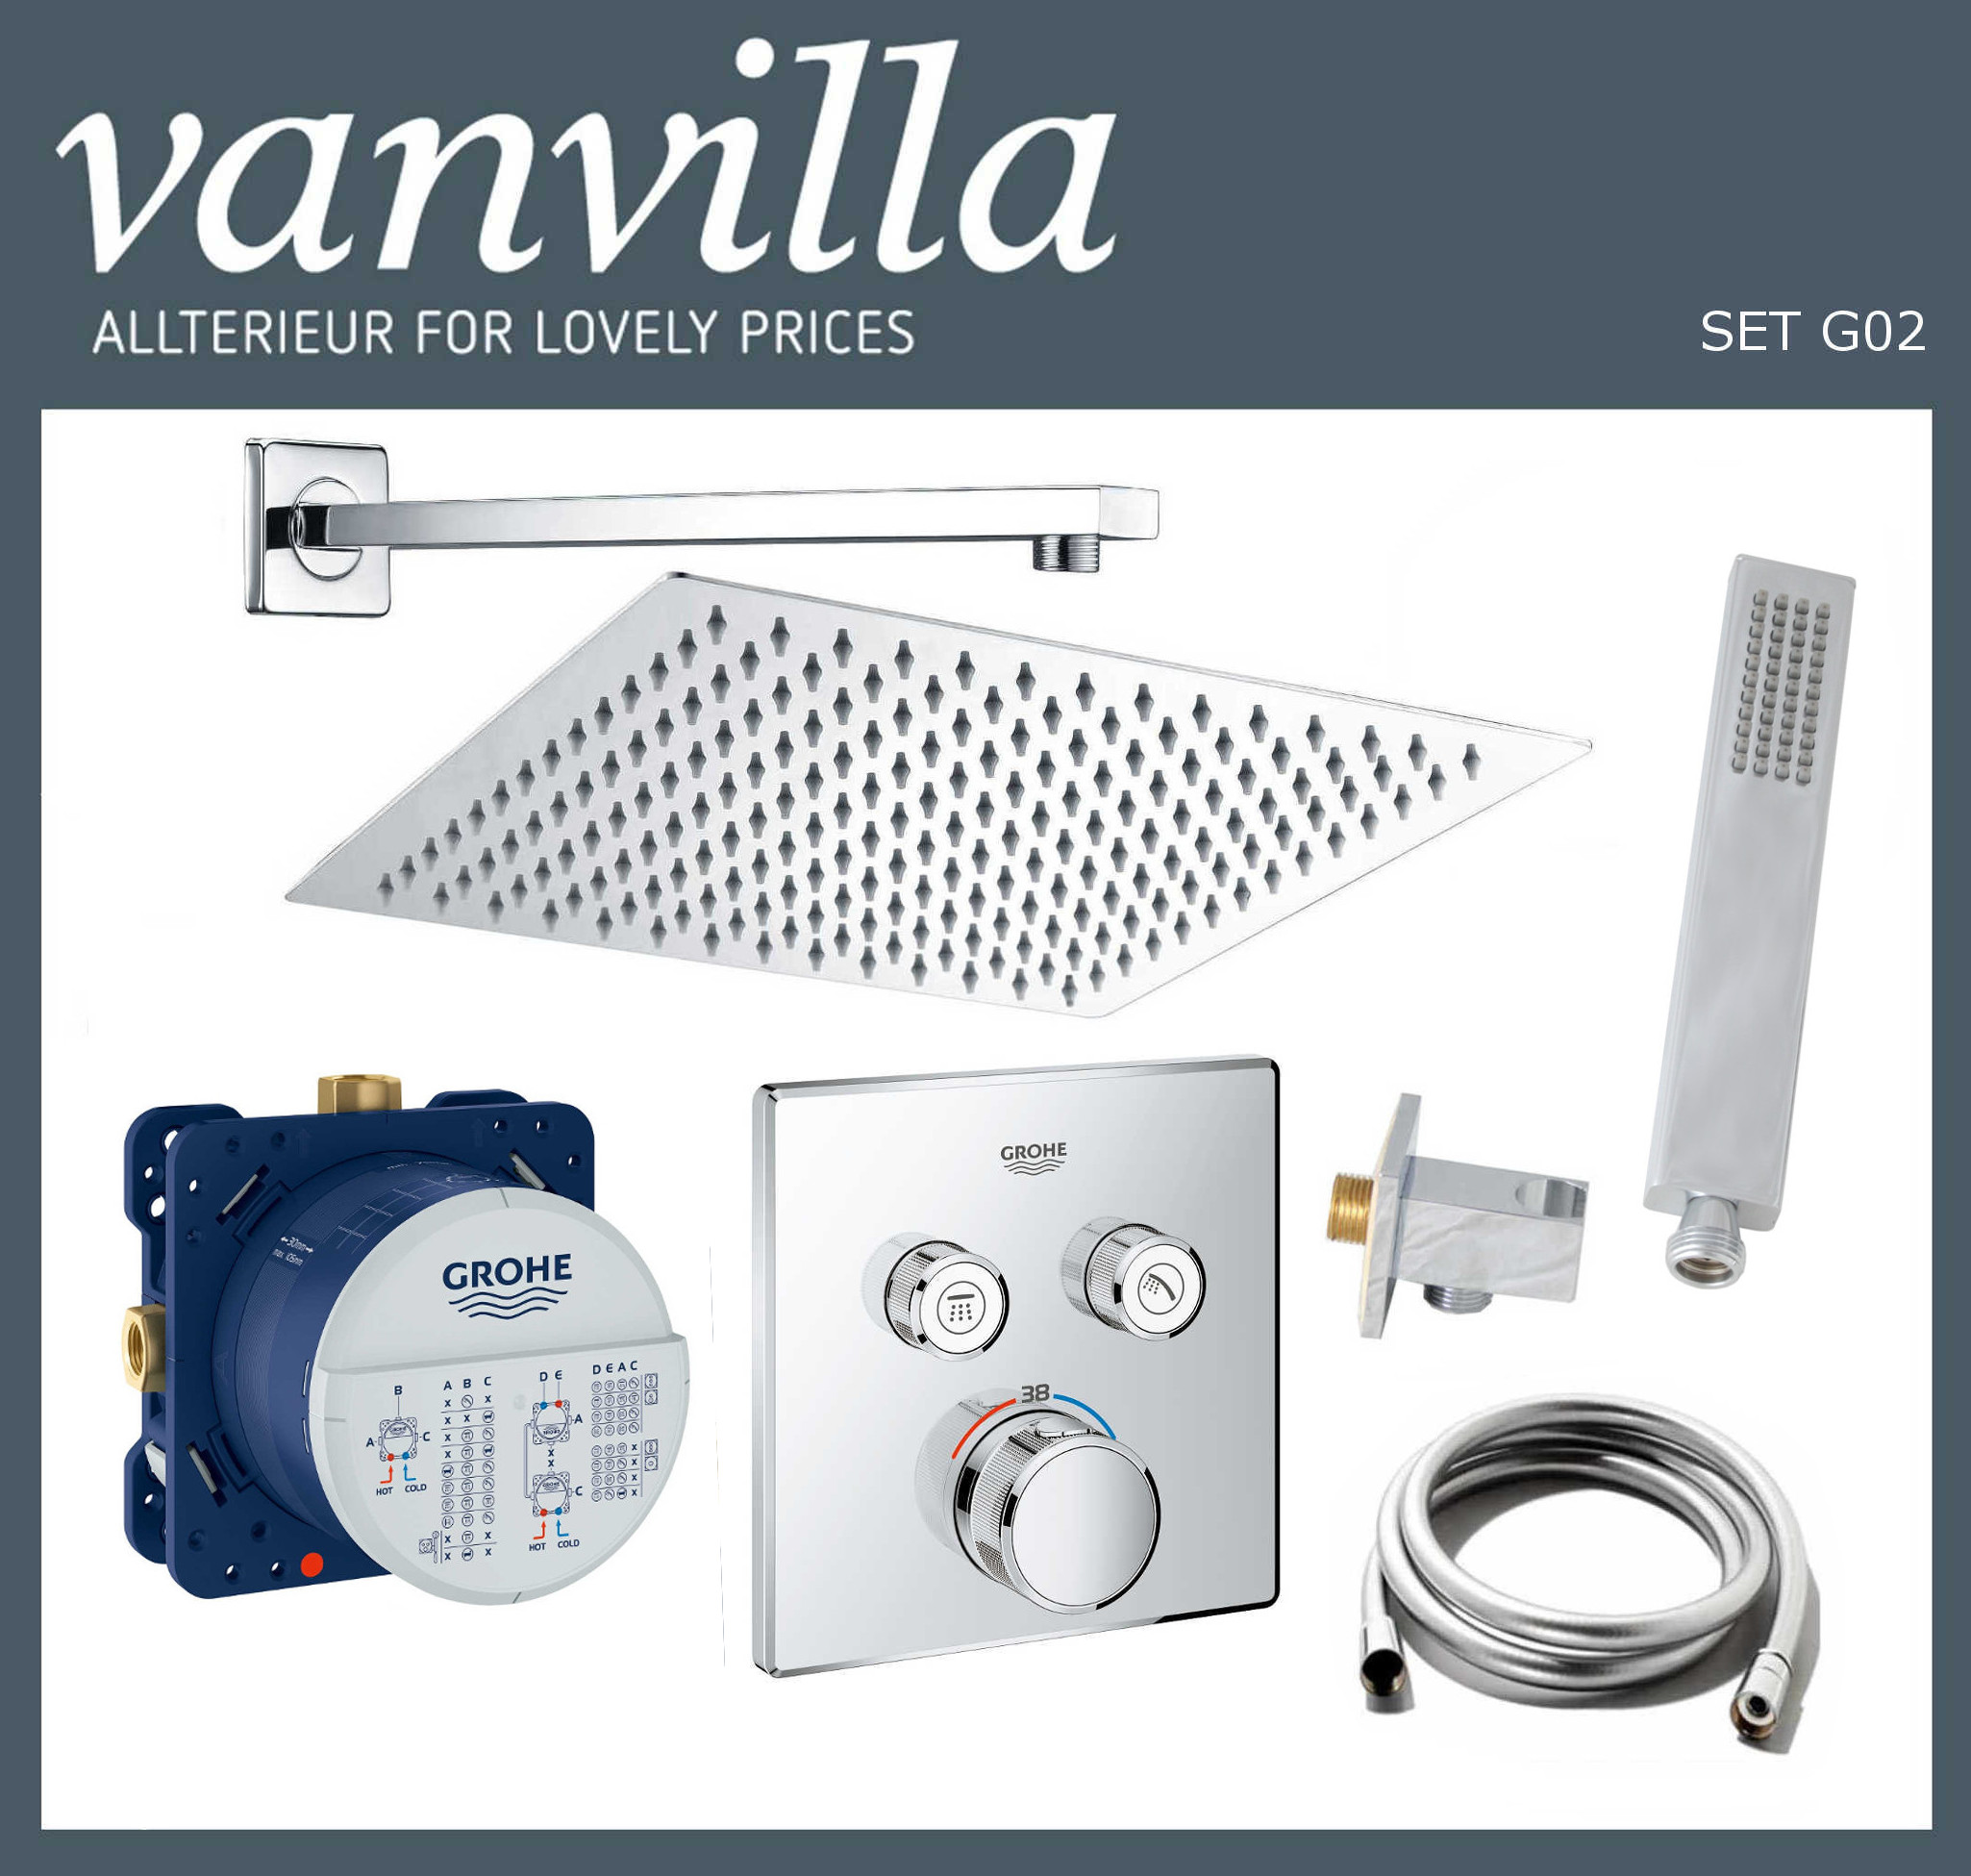 SET G02 UP vanvilla mit Duscharmatur Grohe SmartControl